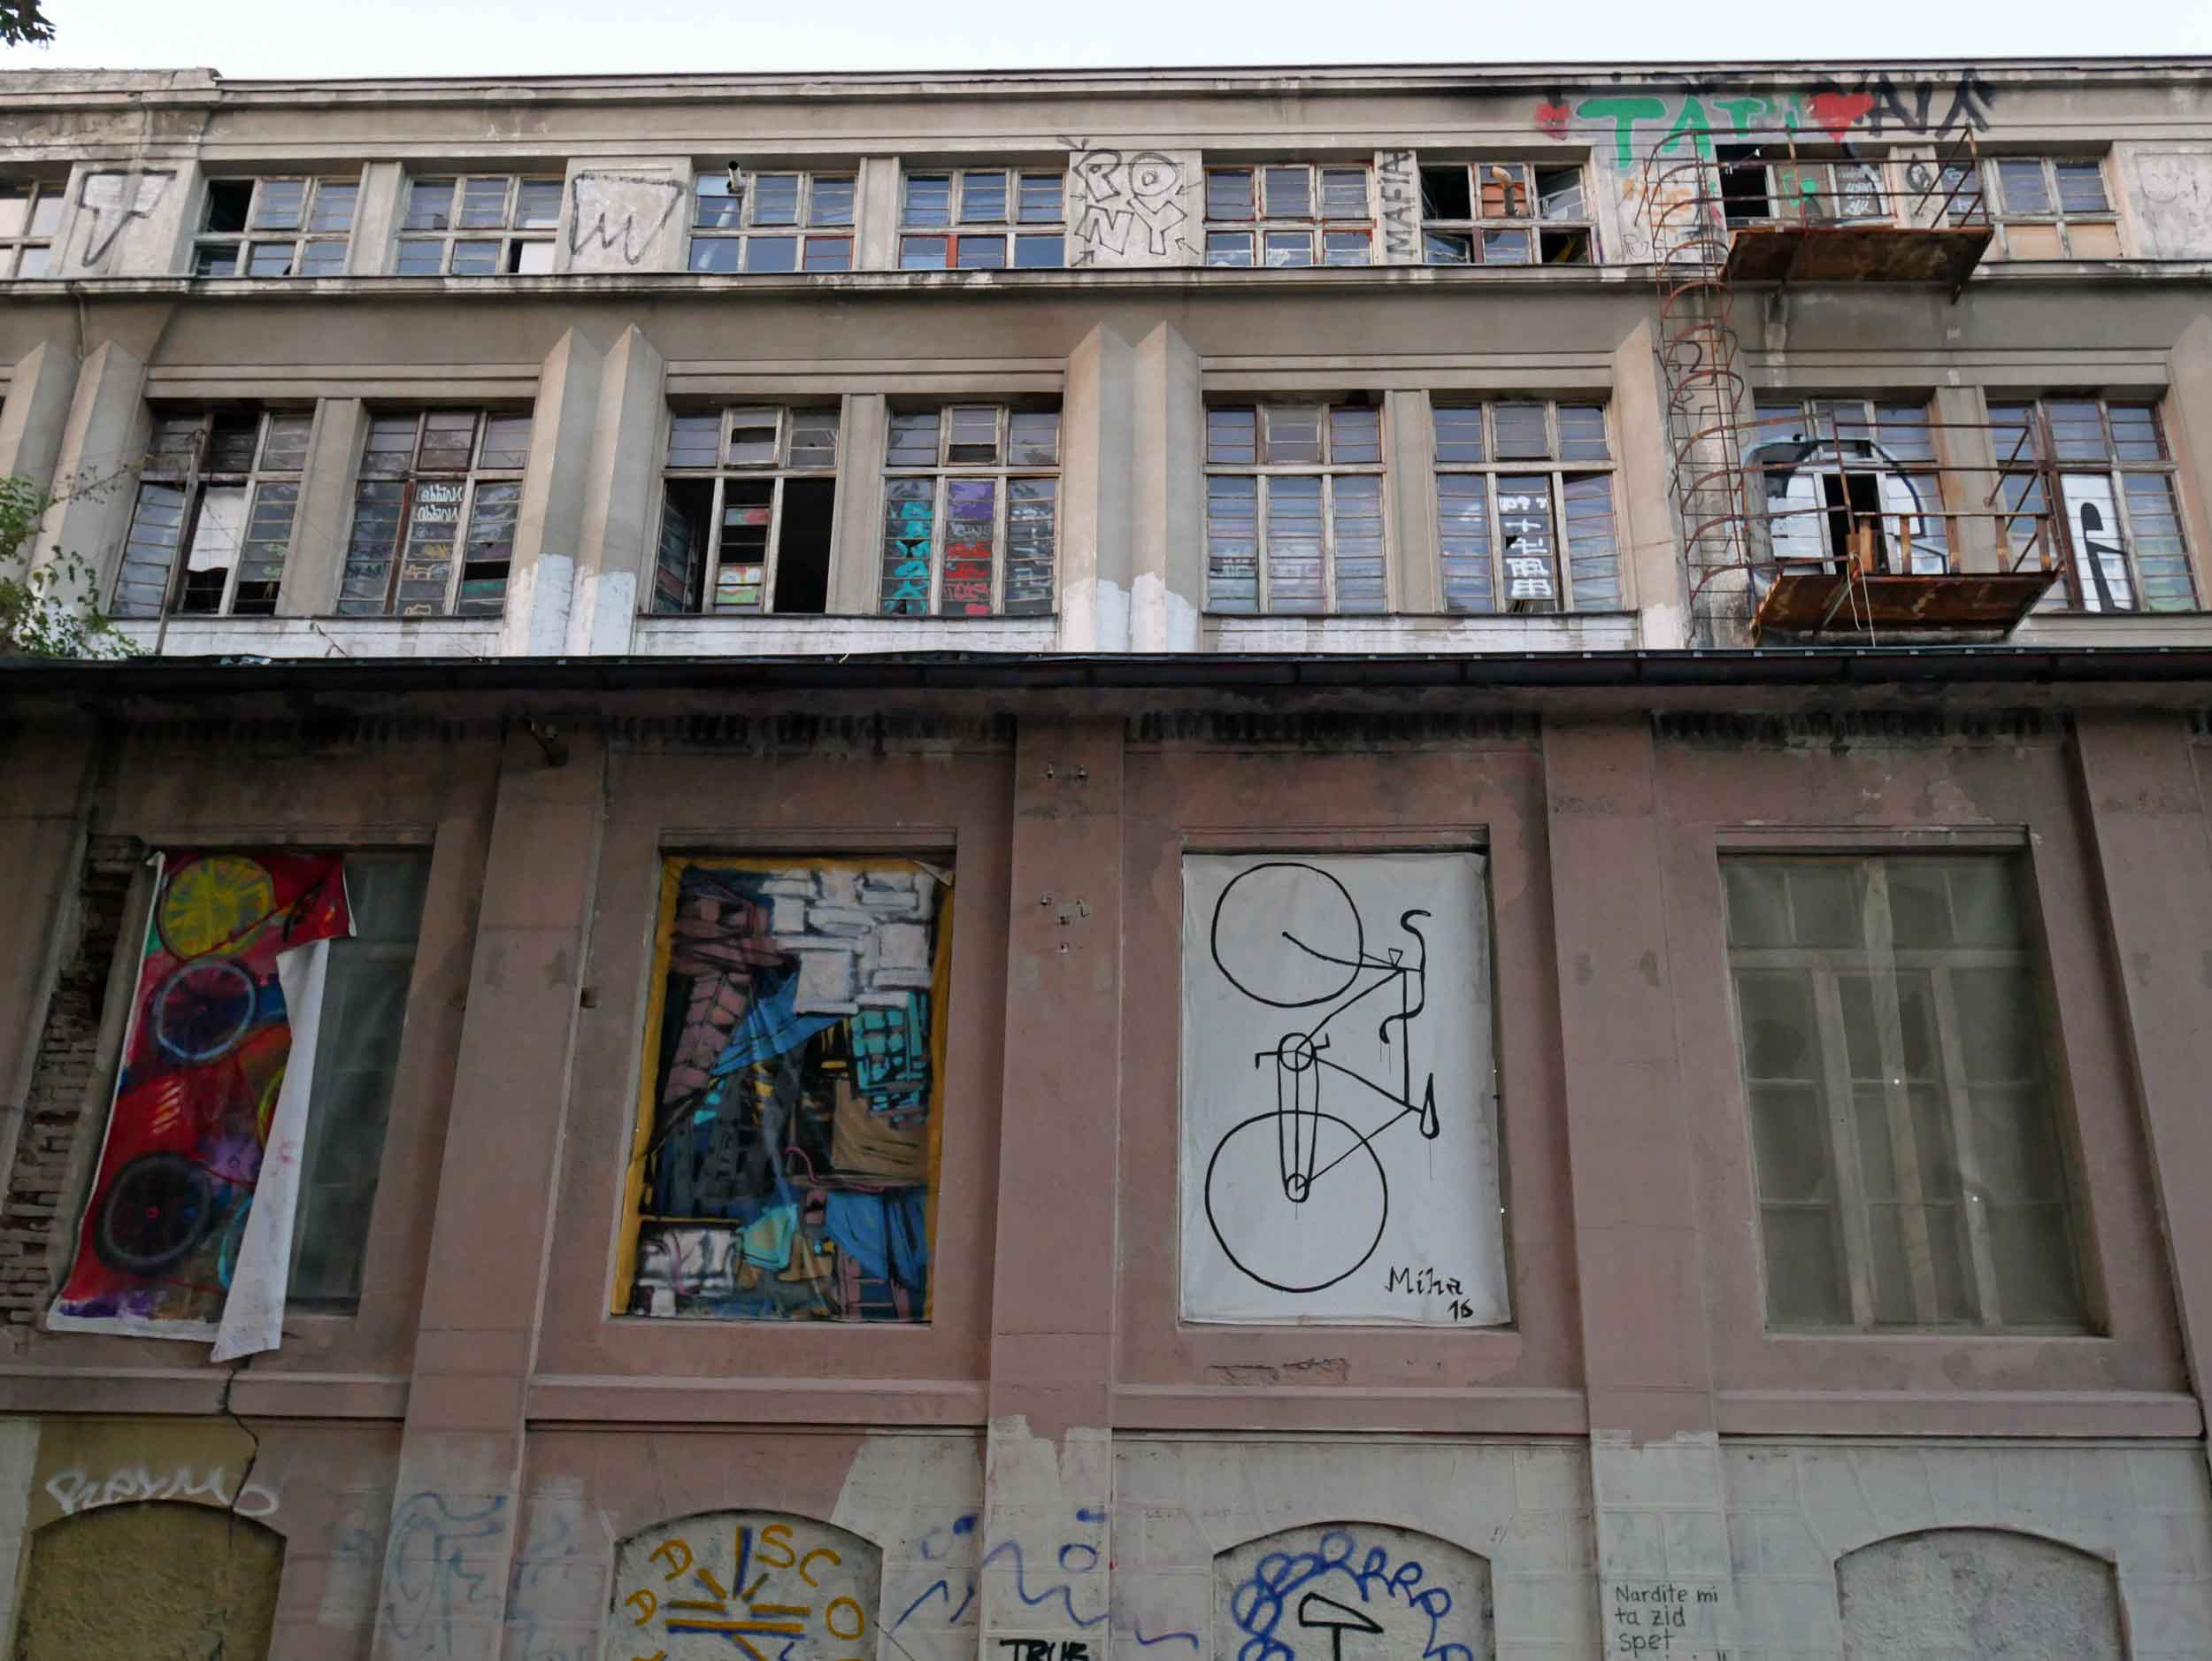 Ljubljana also had a youthful, creative edge including large warehouses that were used by artists.